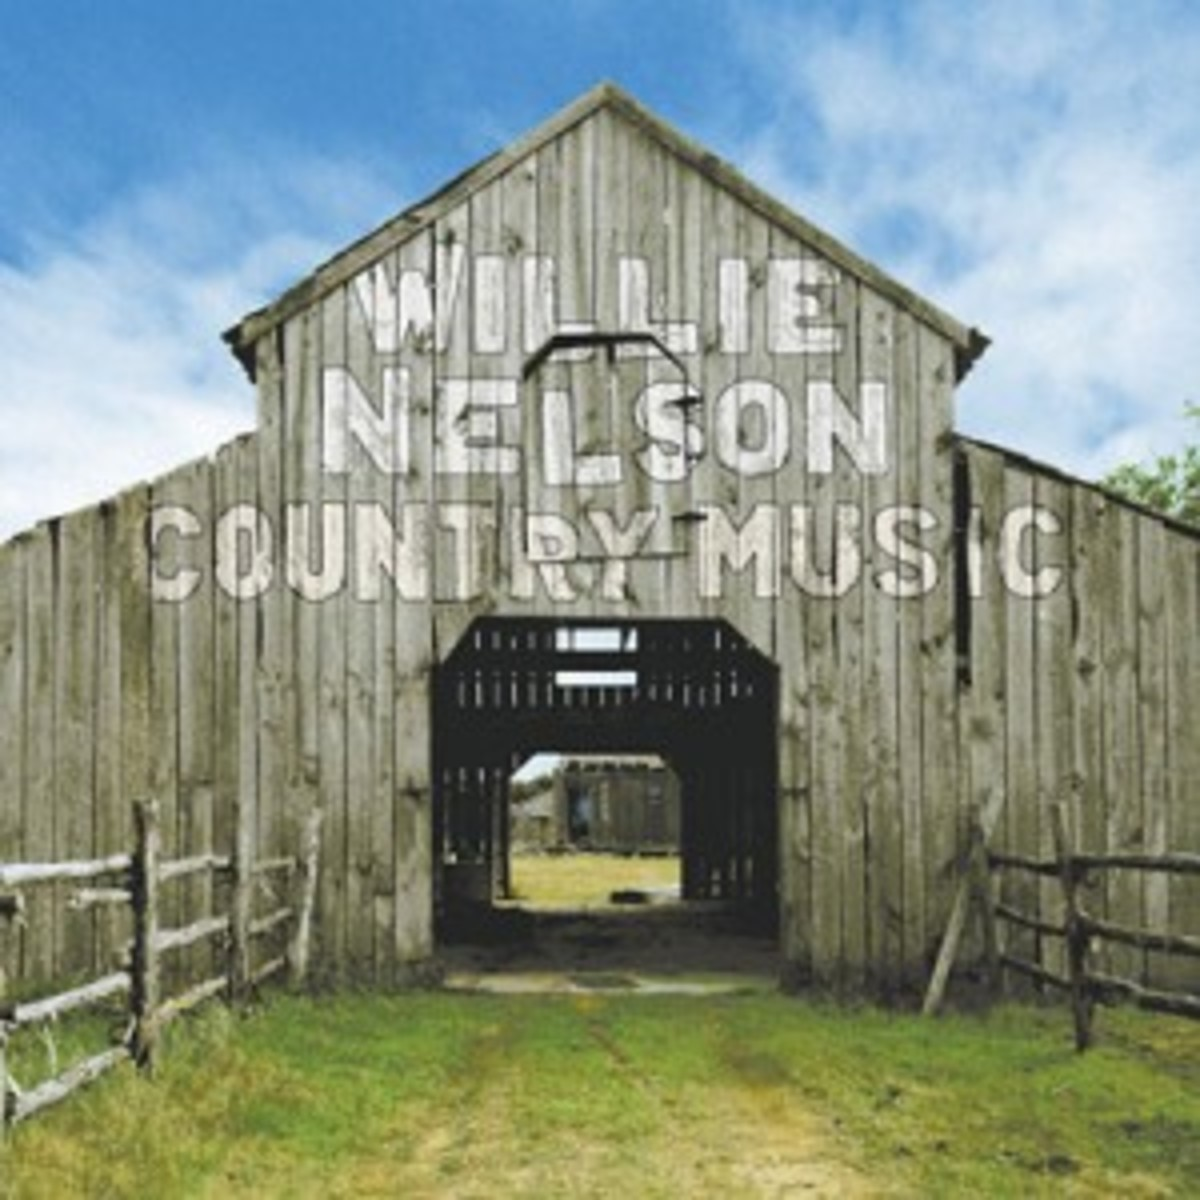 willie nelson album cover 2010 country music